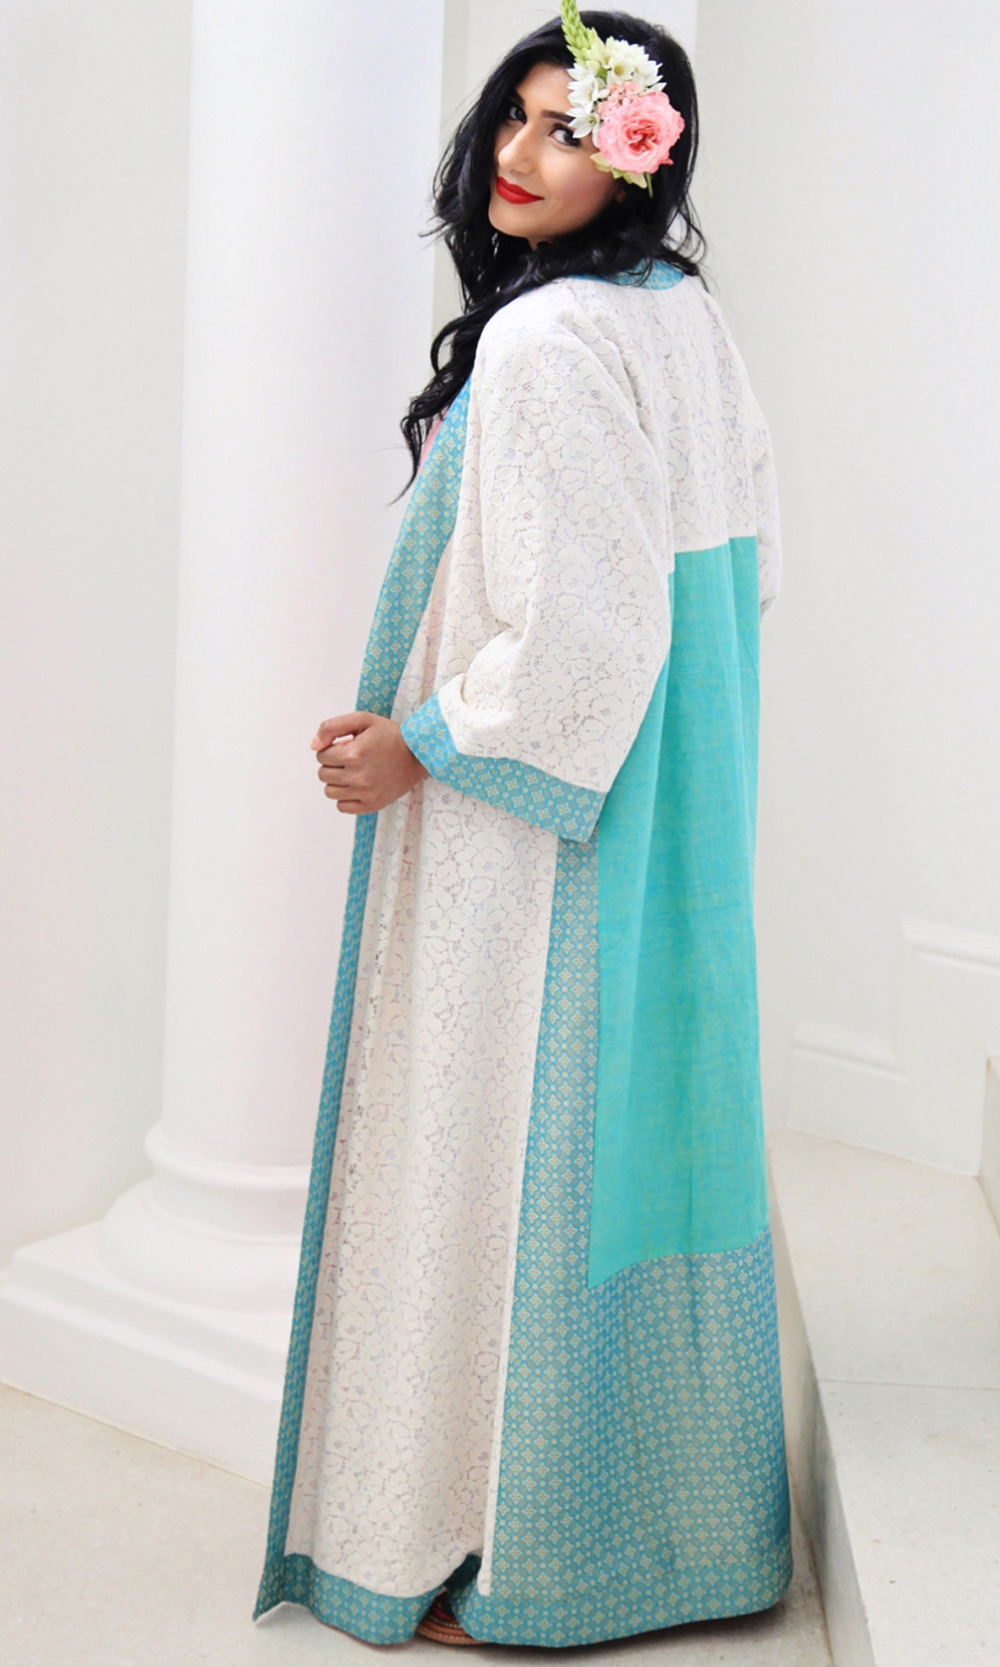 Kaftan Robe Duster Coat Brocade Silk Lace